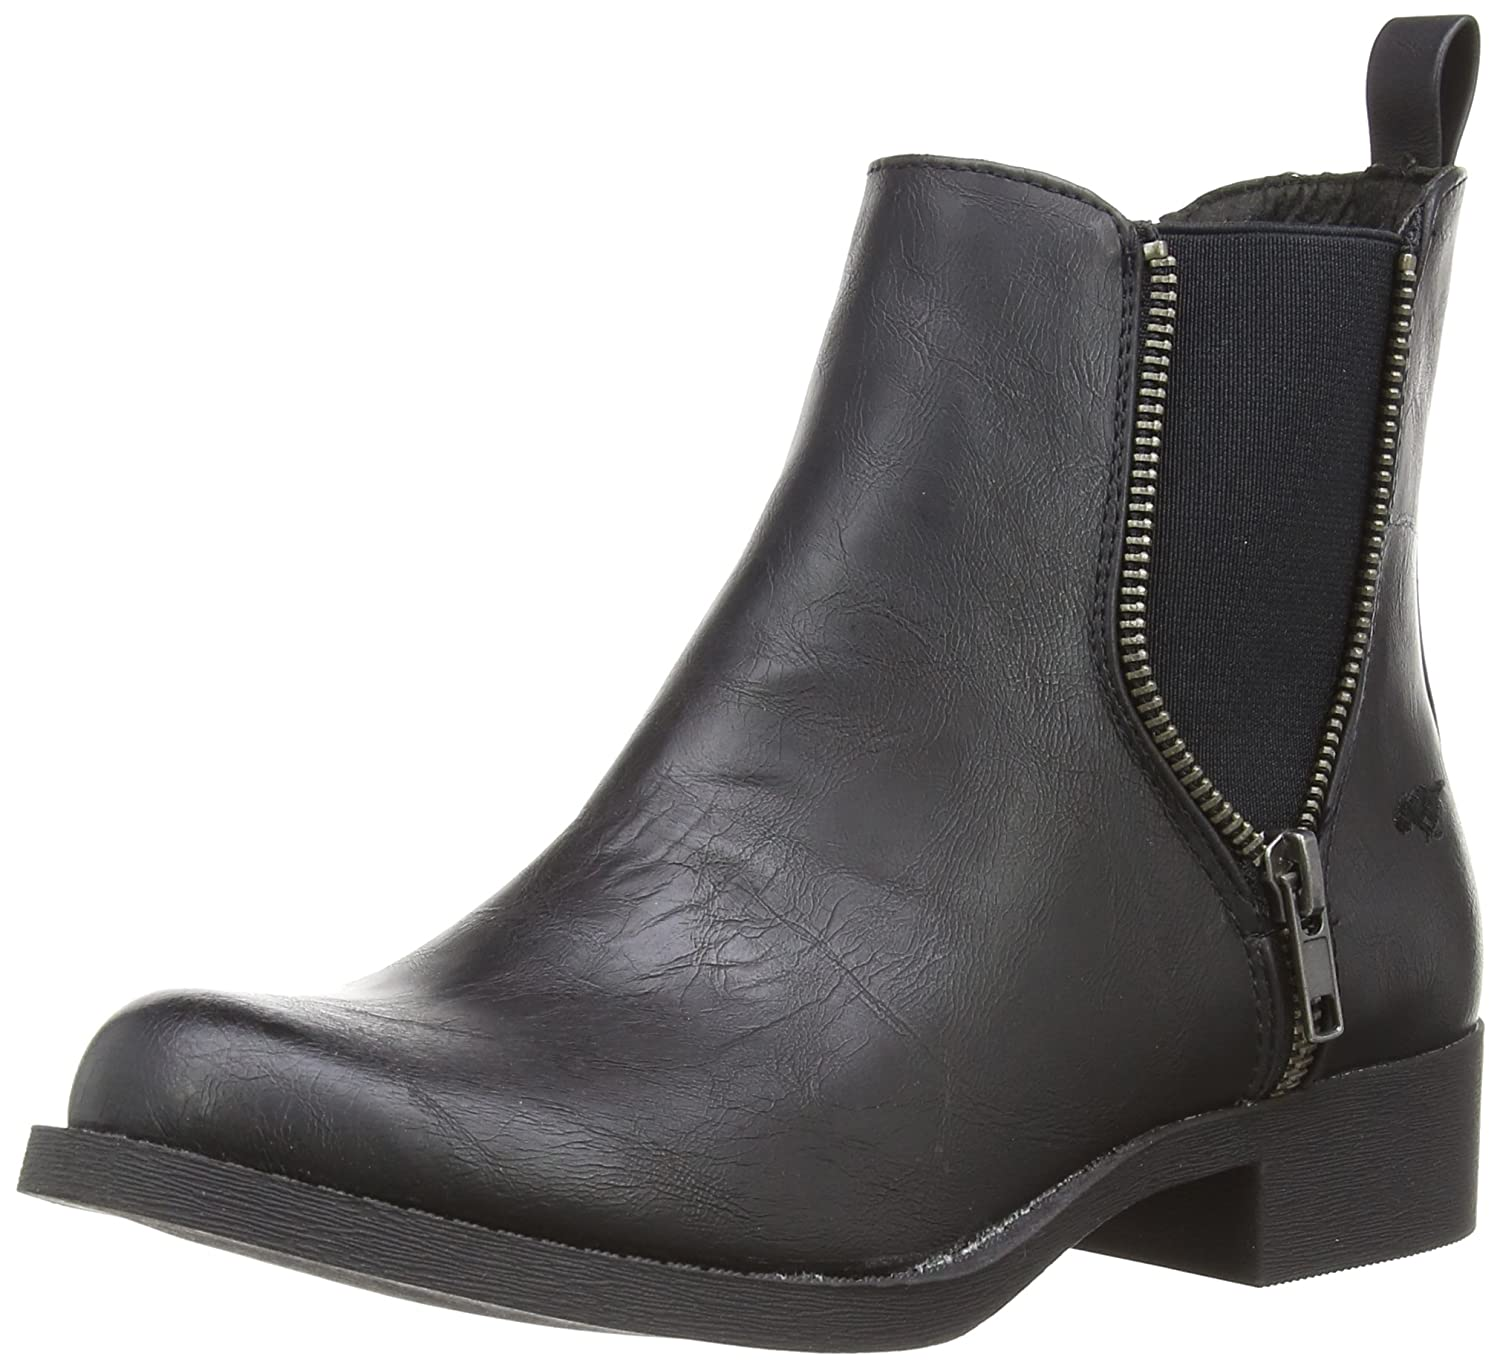 35a0f5a3a79a Rocket Dog Womens Camilla Chelsea Boots  Amazon.co.uk  Shoes   Bags